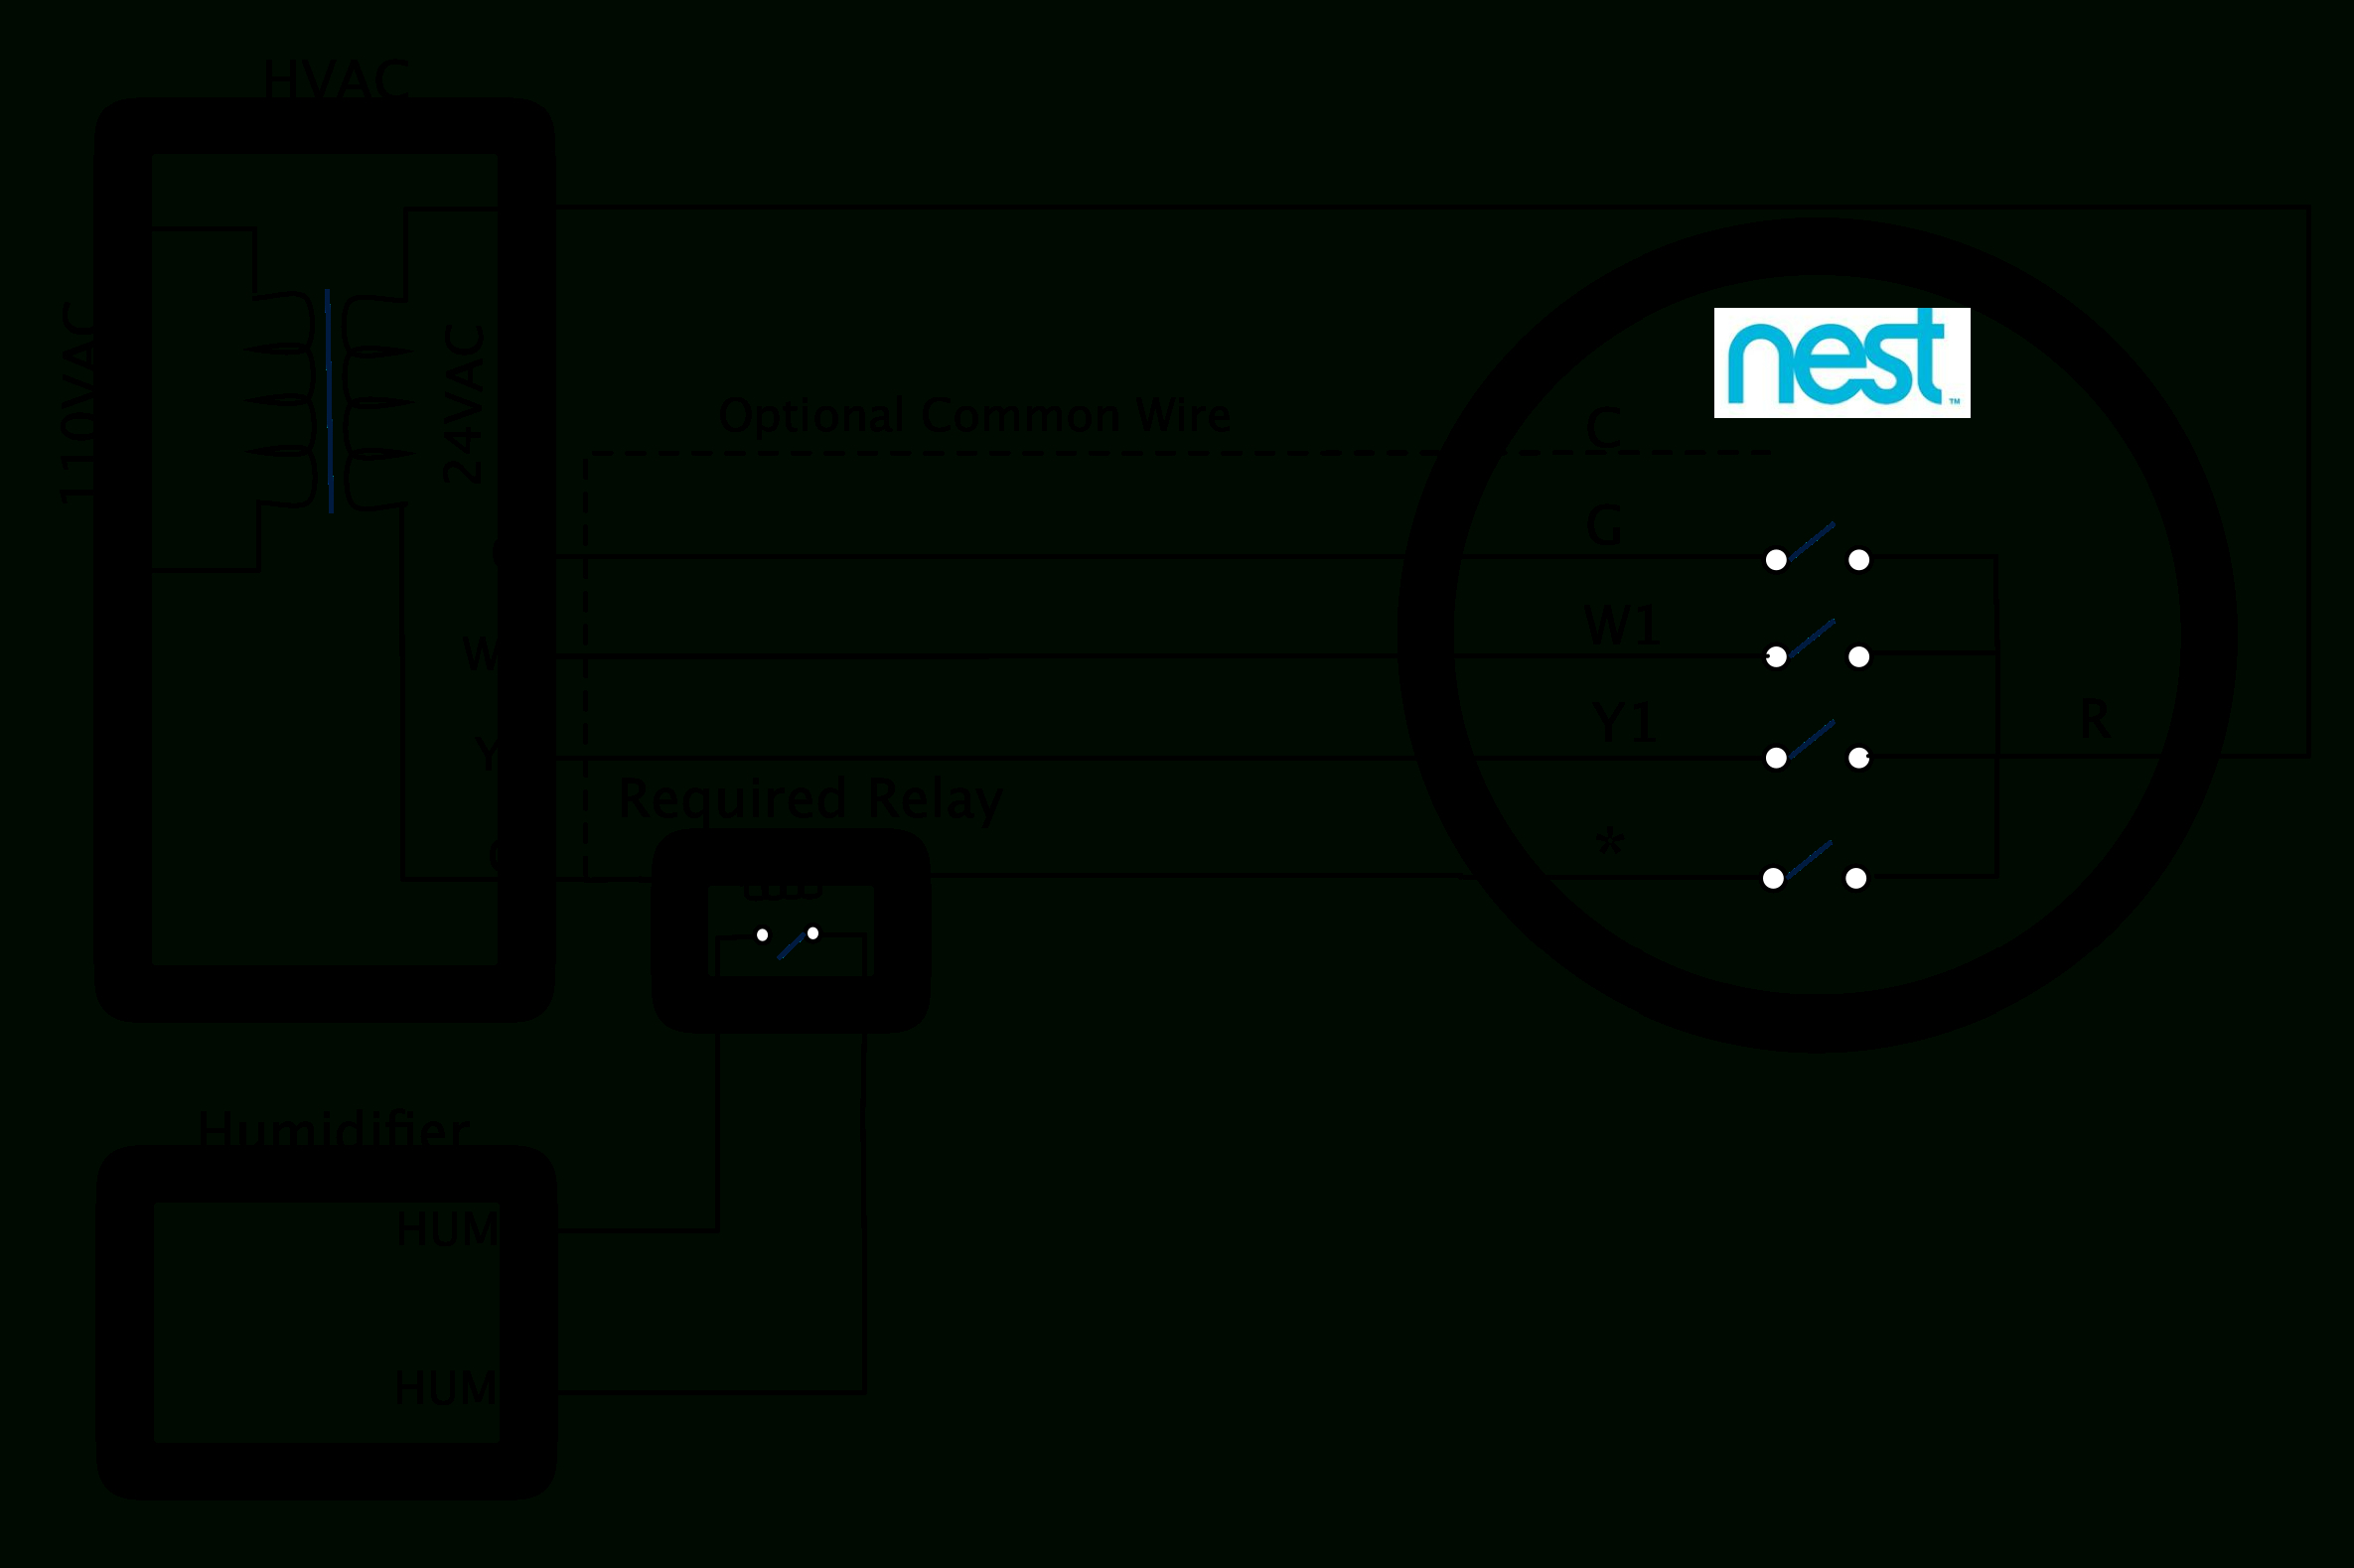 Nest Wiring Diagram - Data Wiring Diagram Today - Nest Smoke Detector Wiring Diagram